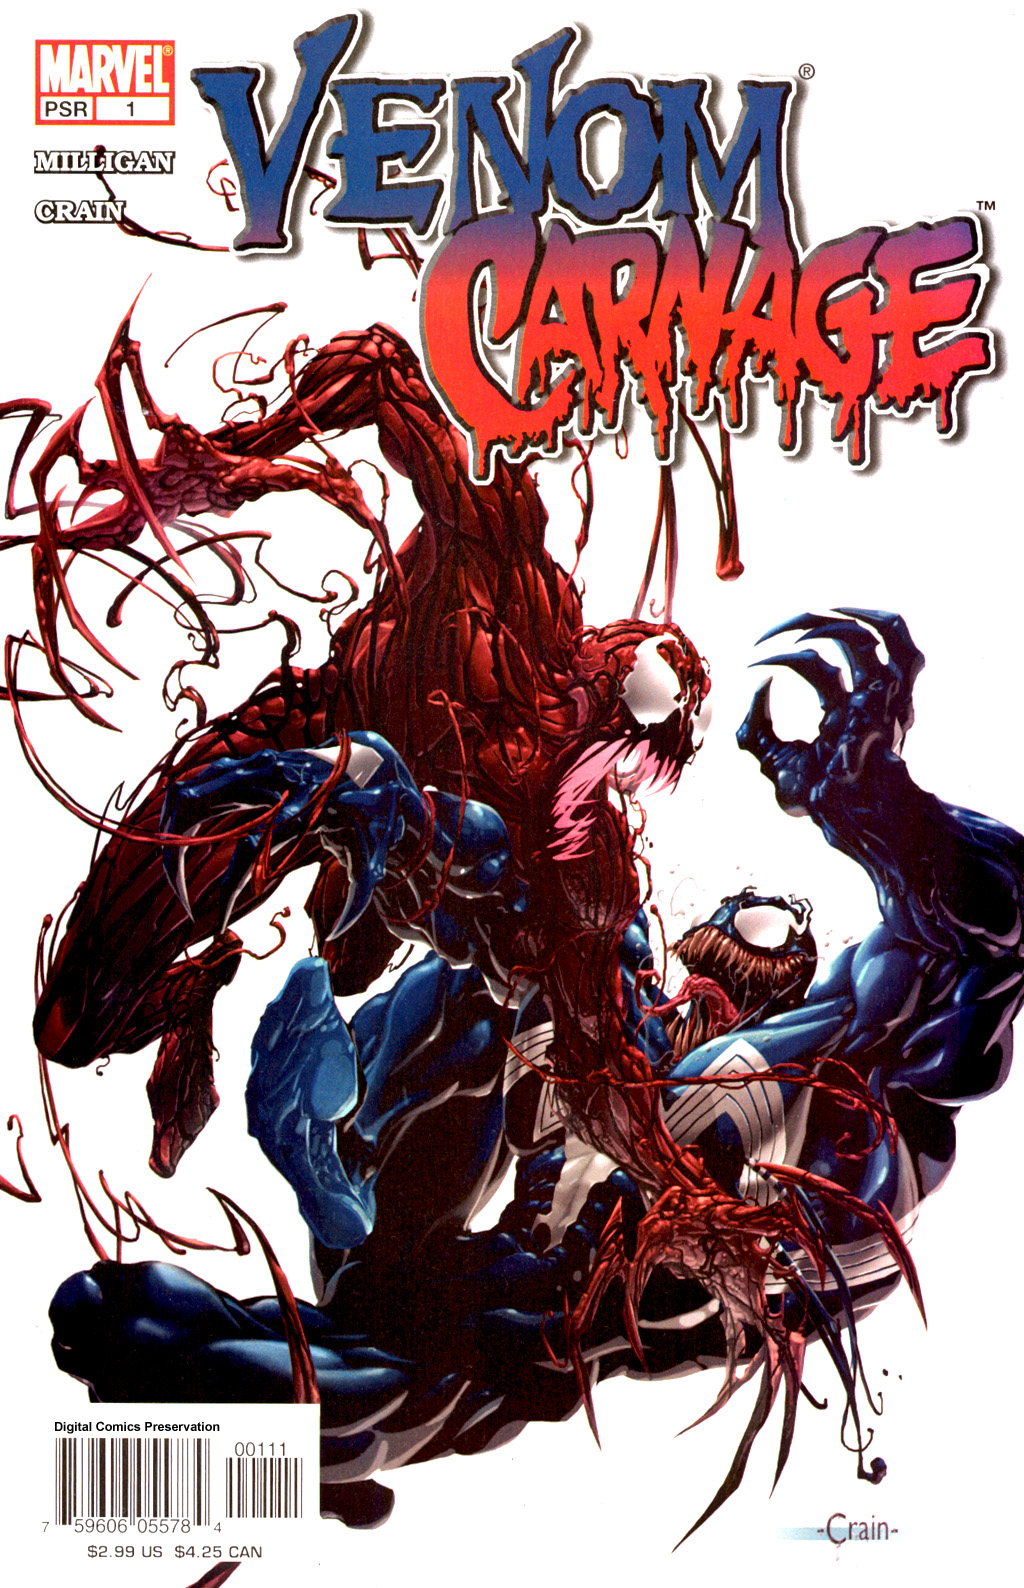 stan map with Venom Vs on Auto Train Gallery Jackowski further 0066073 moreover 29562454872 also Hotel Map additionally Iron Man Armor MK V  Earth 199999.